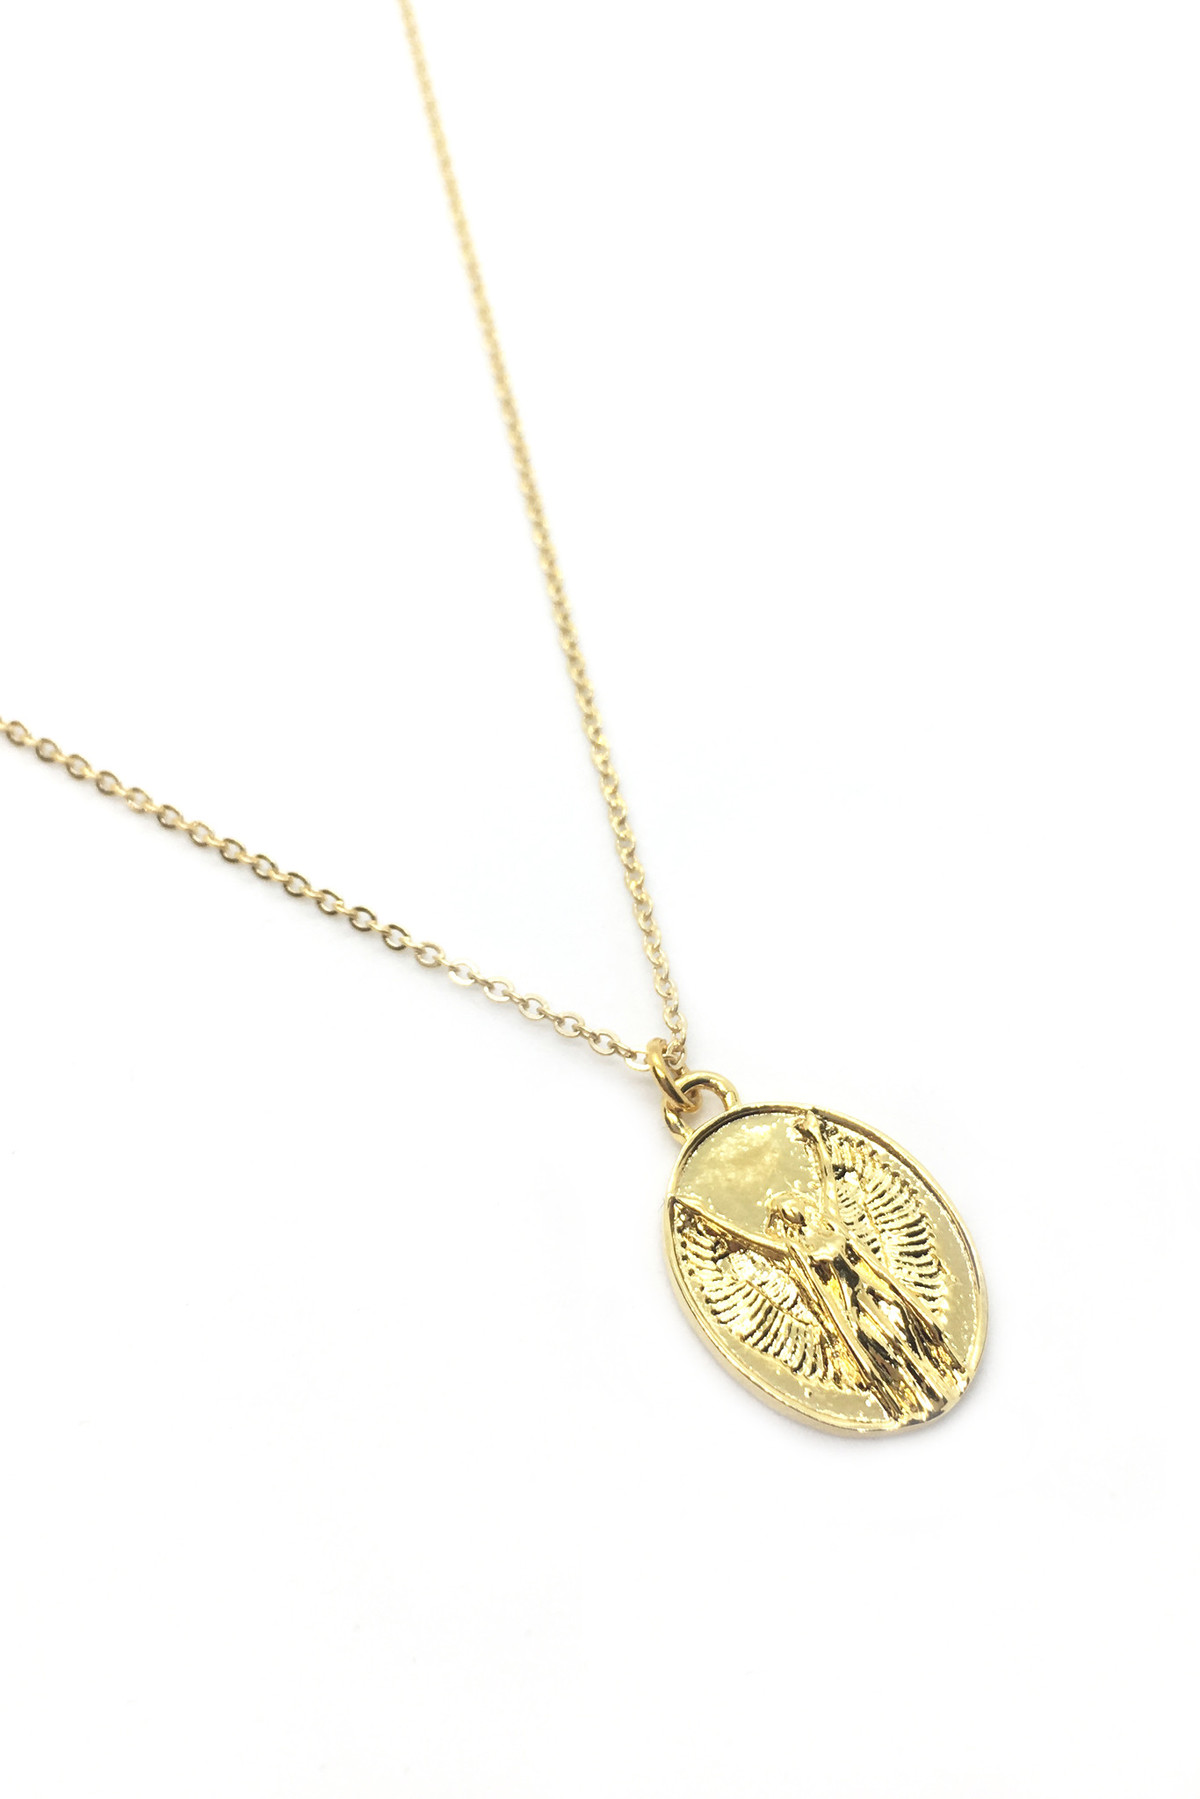 aries pisces gp locket dipped zodiac of all necklace through copy constellation signs products virgo gold